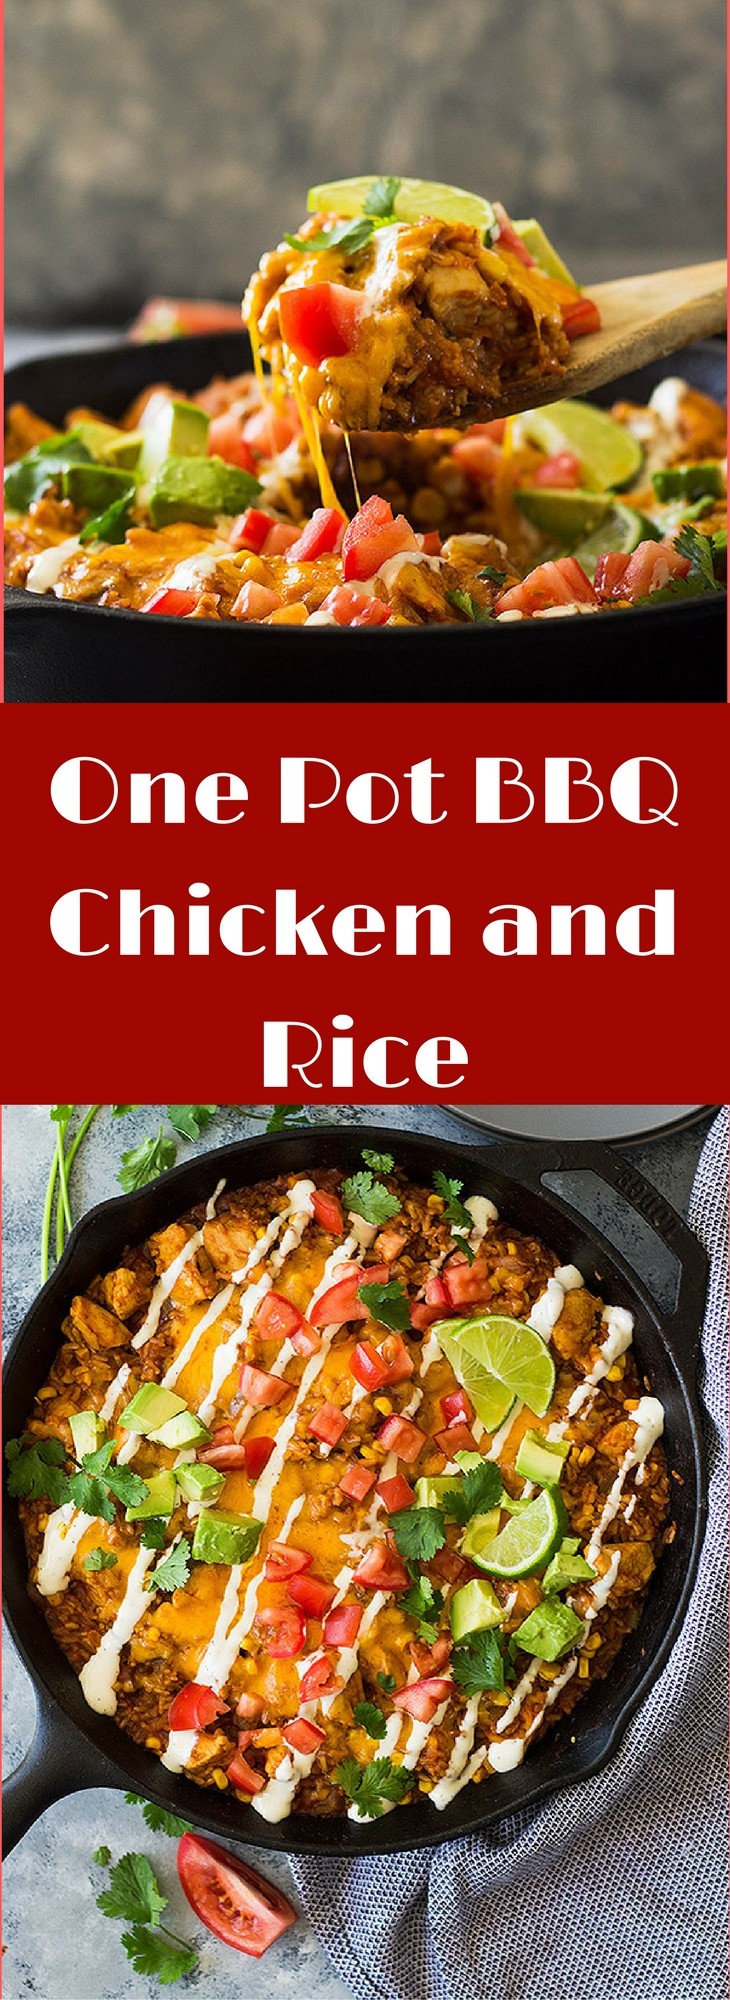 This One Pot BBQ Chicken and Rice is a quick and easy meal the whole family will love! Full of flavor, hearty and satisfying. | www.countrysidecravings.com